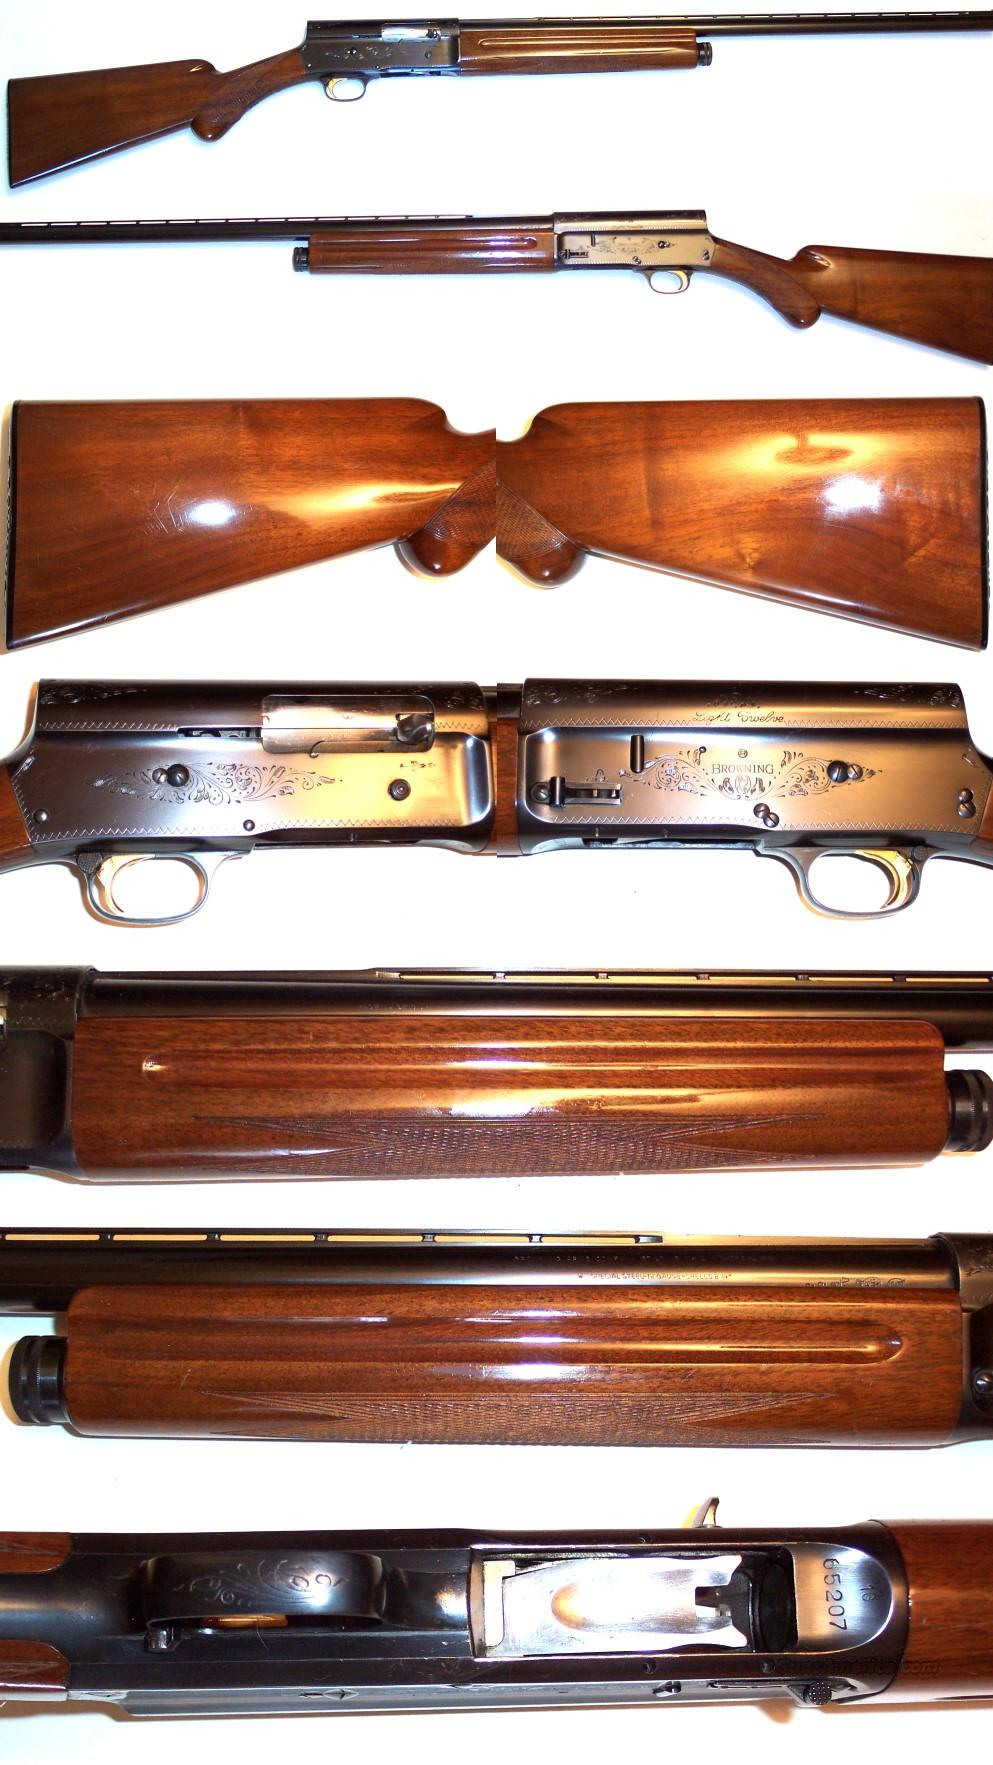 '61 Belgium Browning A5 Light 12  Guns > Shotguns > Browning Shotguns > Autoloaders > Hunting